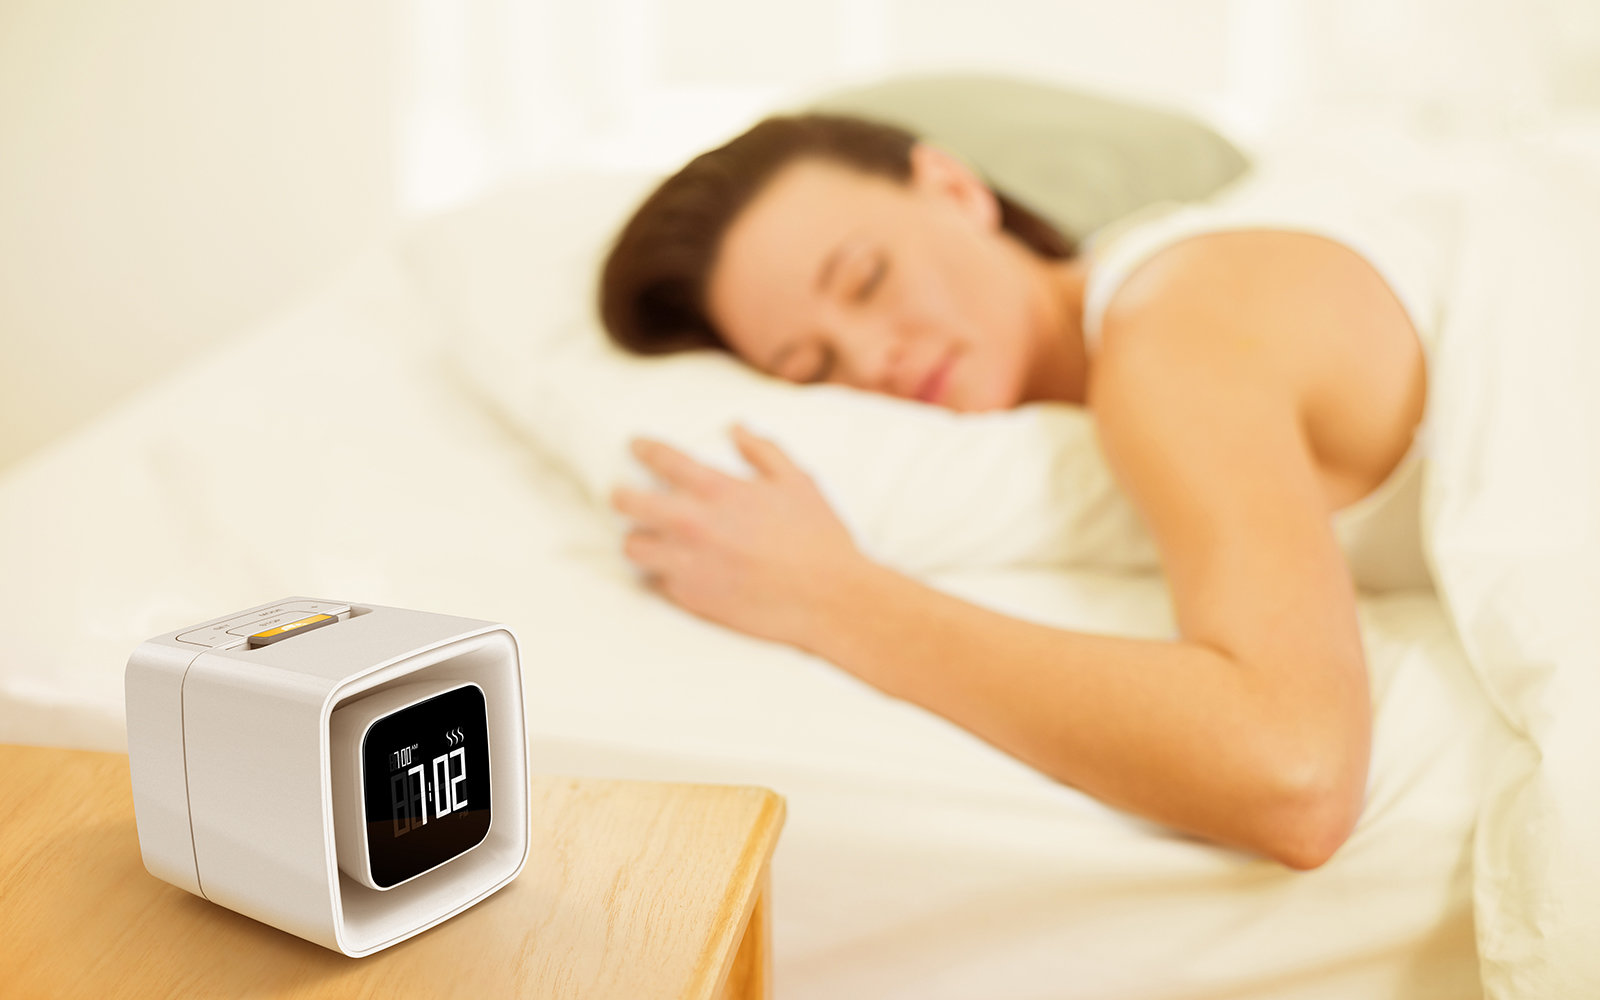 Wake Up Happier With This Scented Alarm Clock | Travel + Leisure